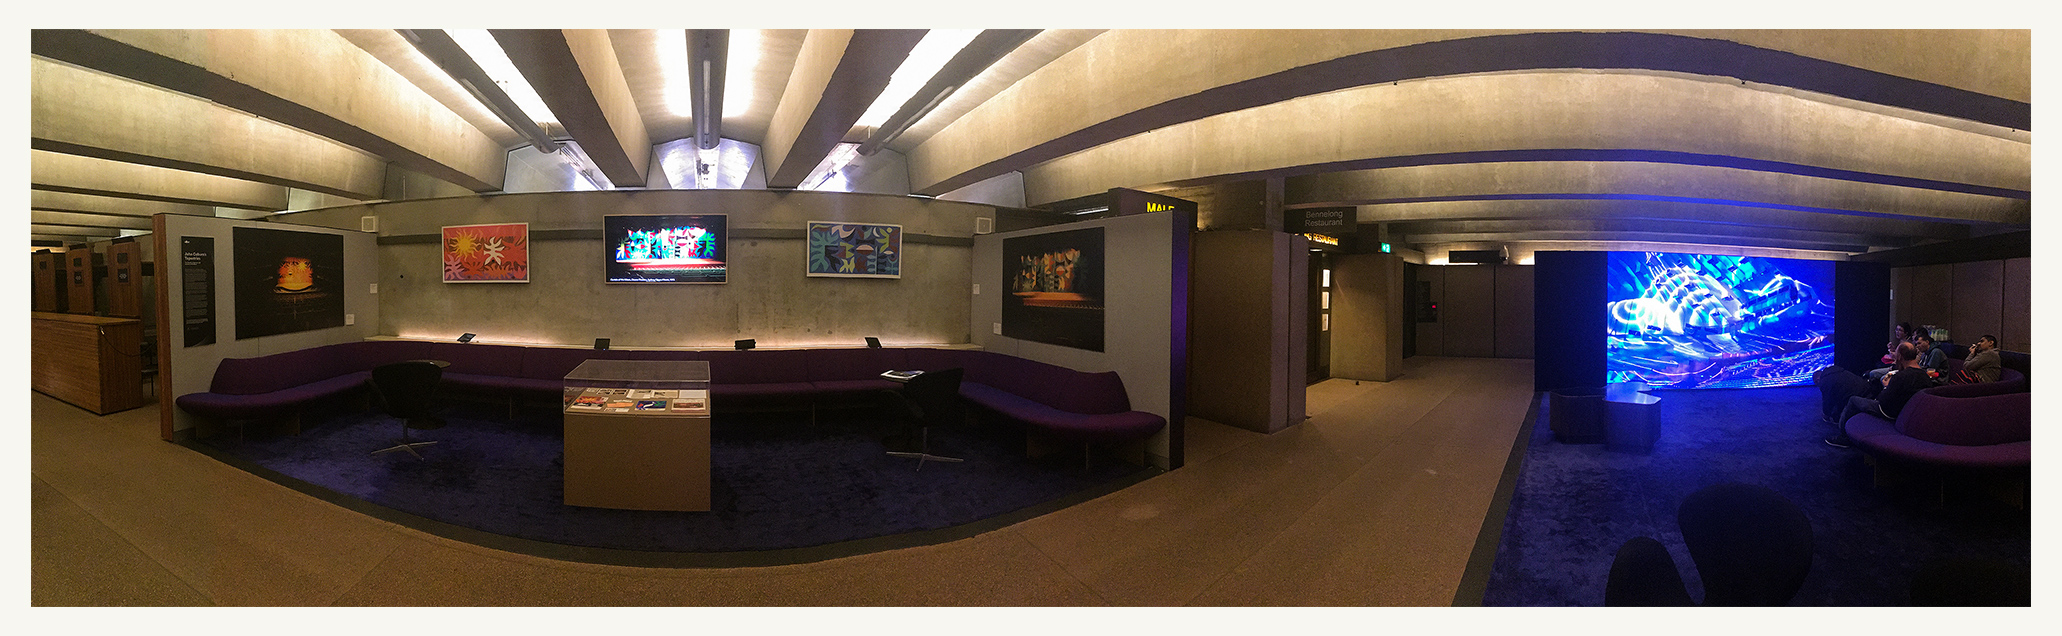 Panorama of The Lounge at Sydney Opera House. Exhibit space shows the curtains in 1973 alongside the original (painted) designs. Also a video slideshow and display box of ephemera.